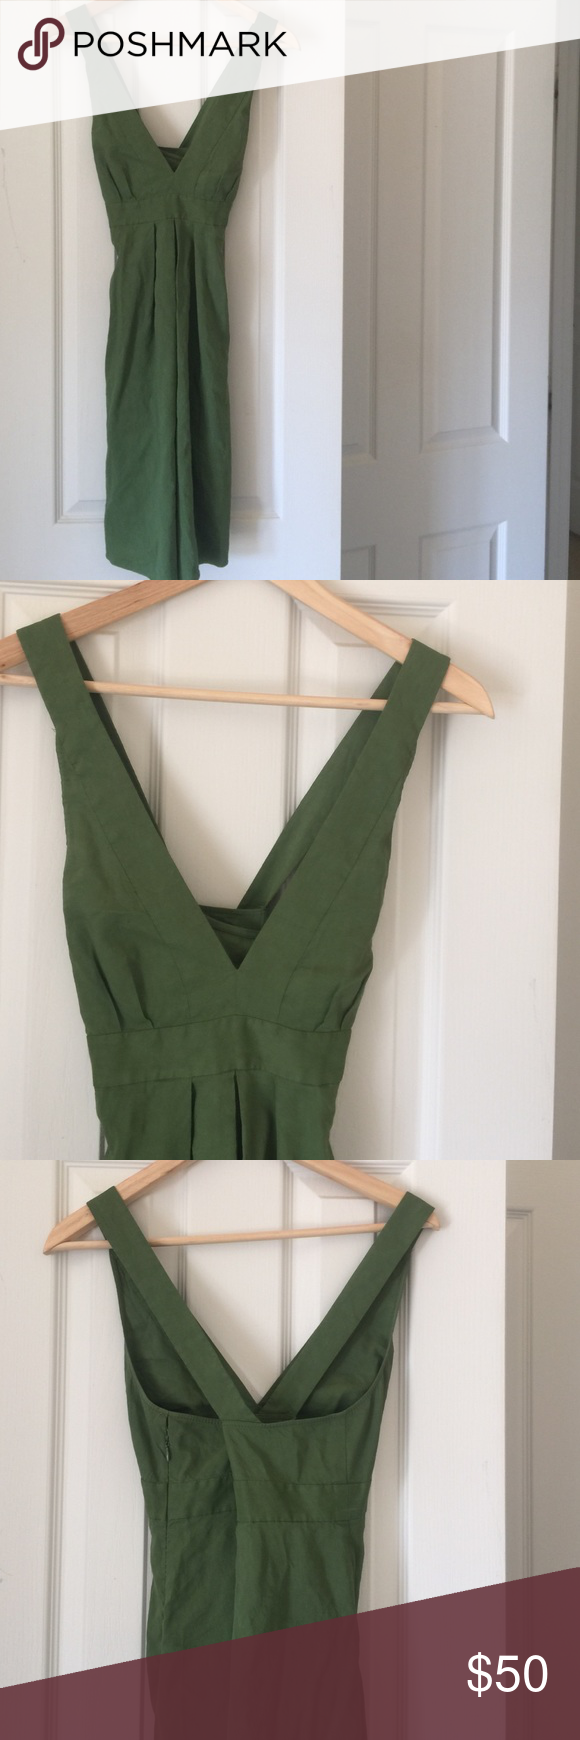 Theory Linen dress! Amazing miss colored green Theory dress! 62% linen rest is stretch! Side zip and pockets! Perfect for summer falls to the knee and has a criss cross back! Please note small tear by zipper hardly noticeable does not effect zipping or closing the dress ( shown in photos) has lots of life left for this dress! Theory Dresses Midi